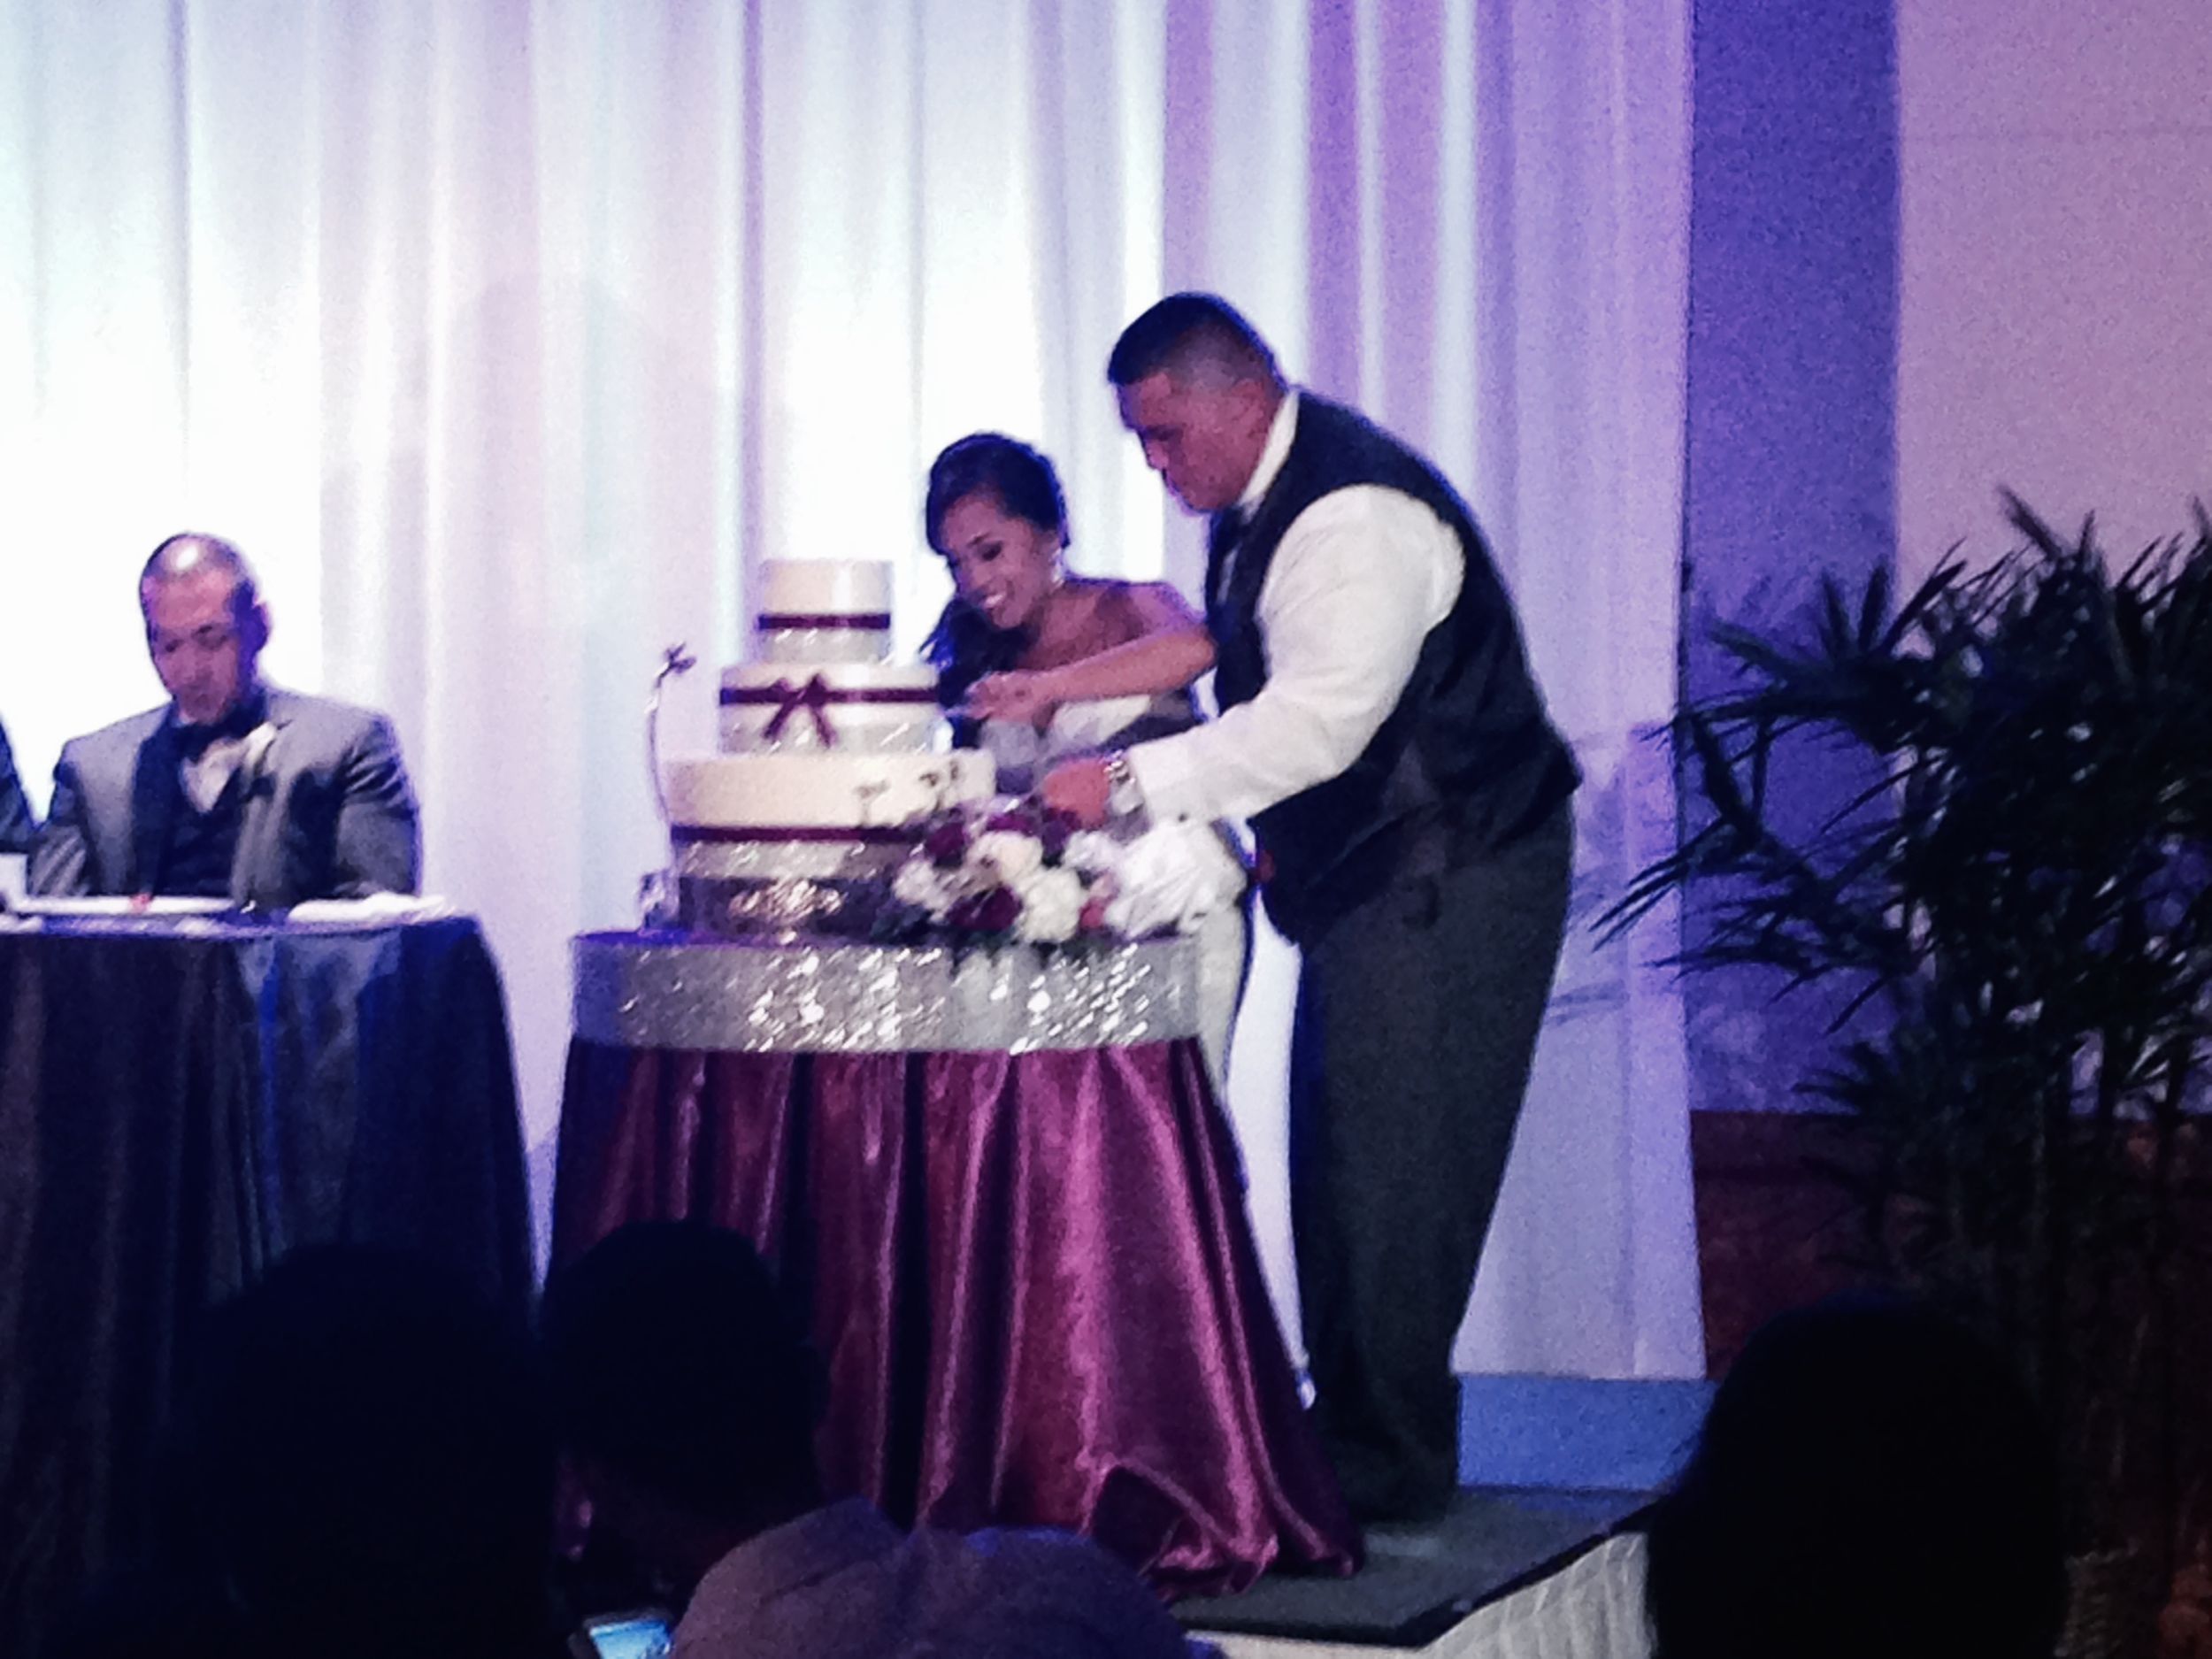 mike-ashley-wedding-cake-cutting